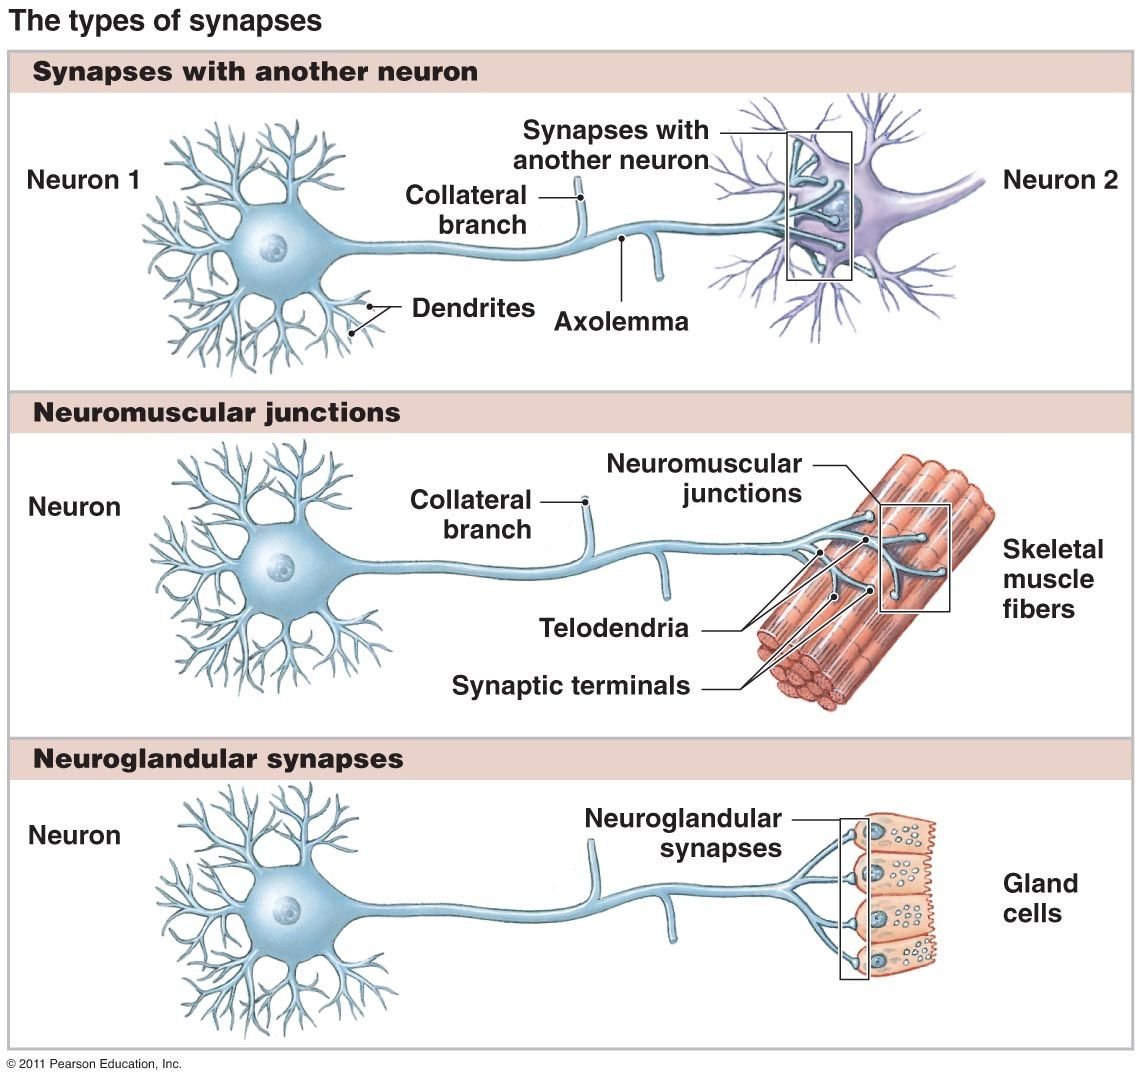 types of synapses neuroscience pinterest neuroscience. Black Bedroom Furniture Sets. Home Design Ideas